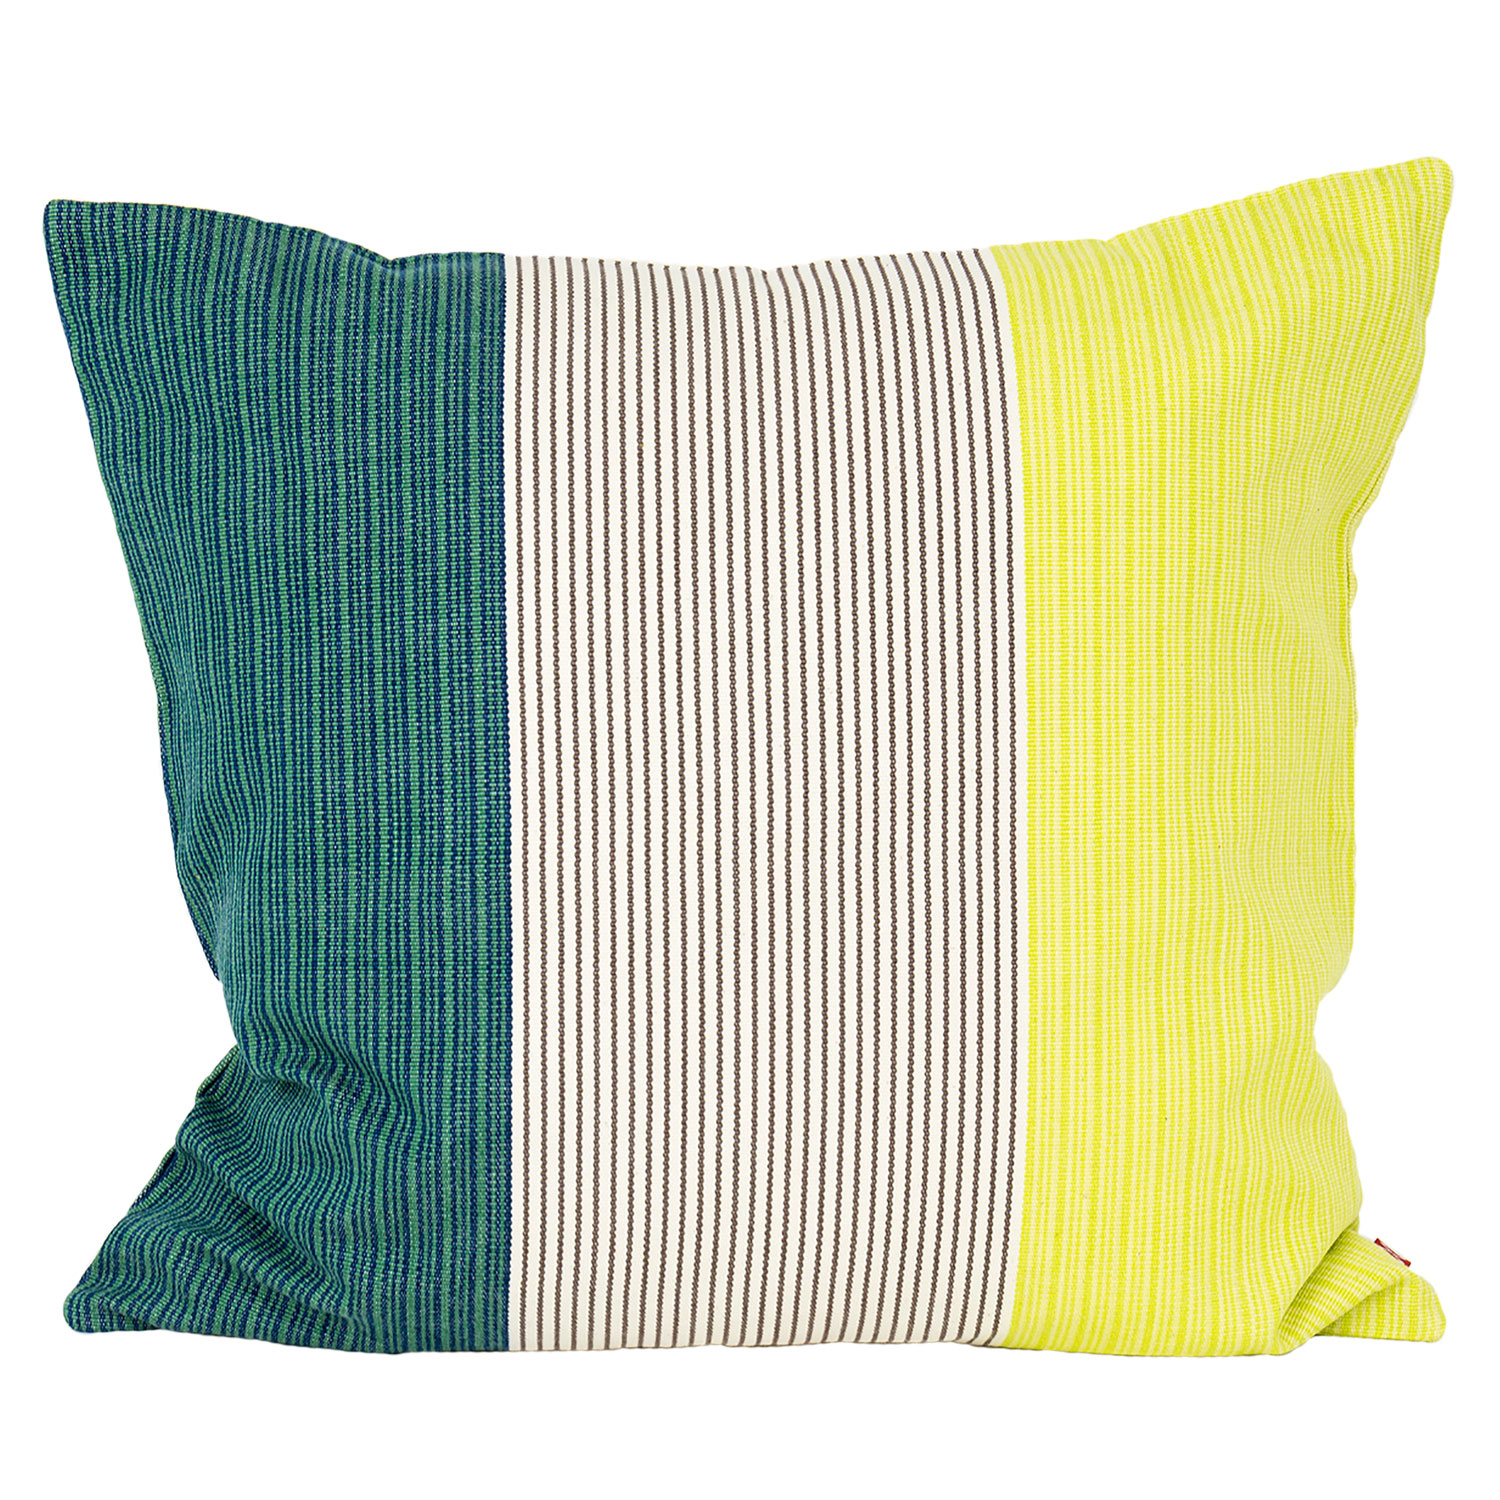 Ace Cushion Cover 50x50 cm, Mix